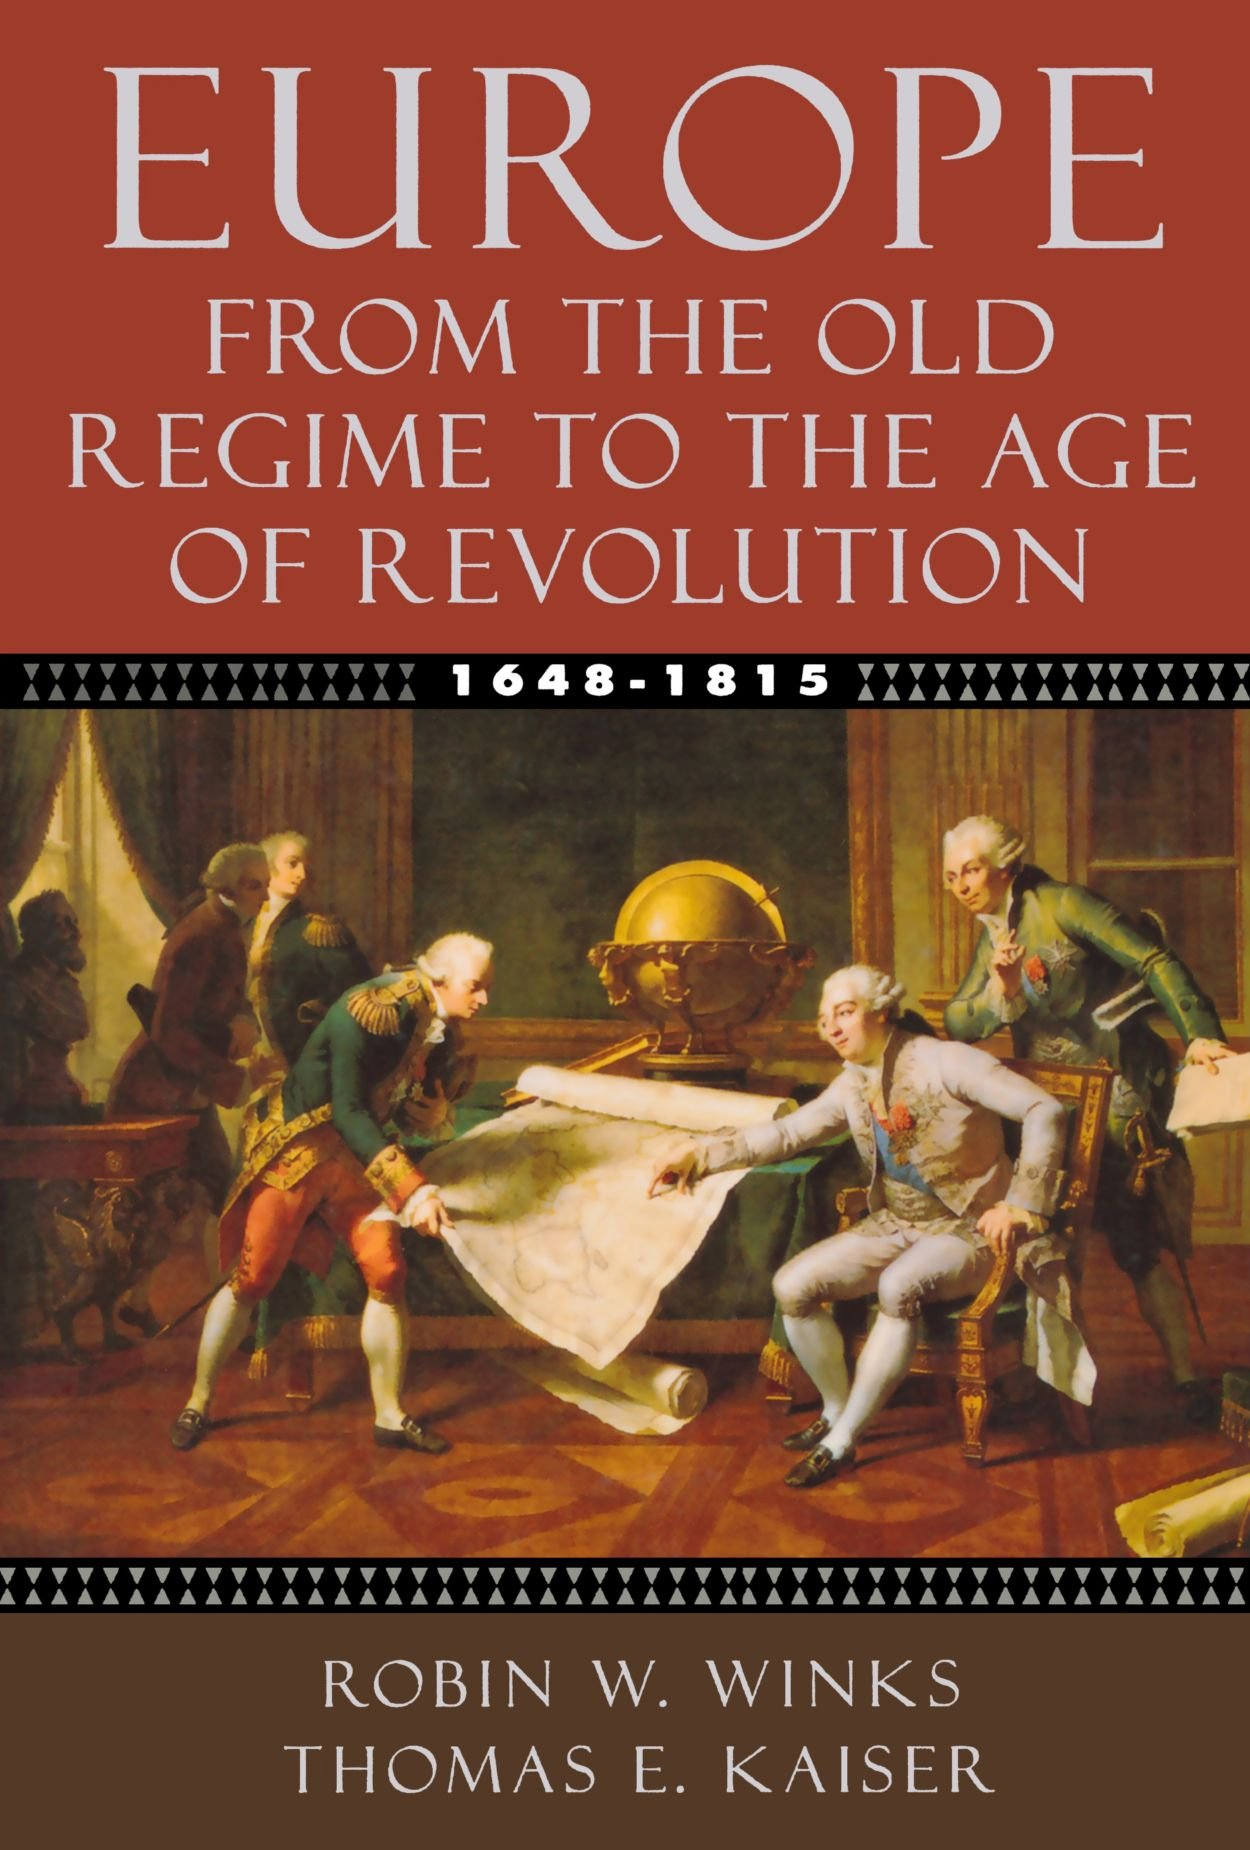 Europe, 1648-1815: From the Old Regime to the Age of Revolution by Oxford University Press